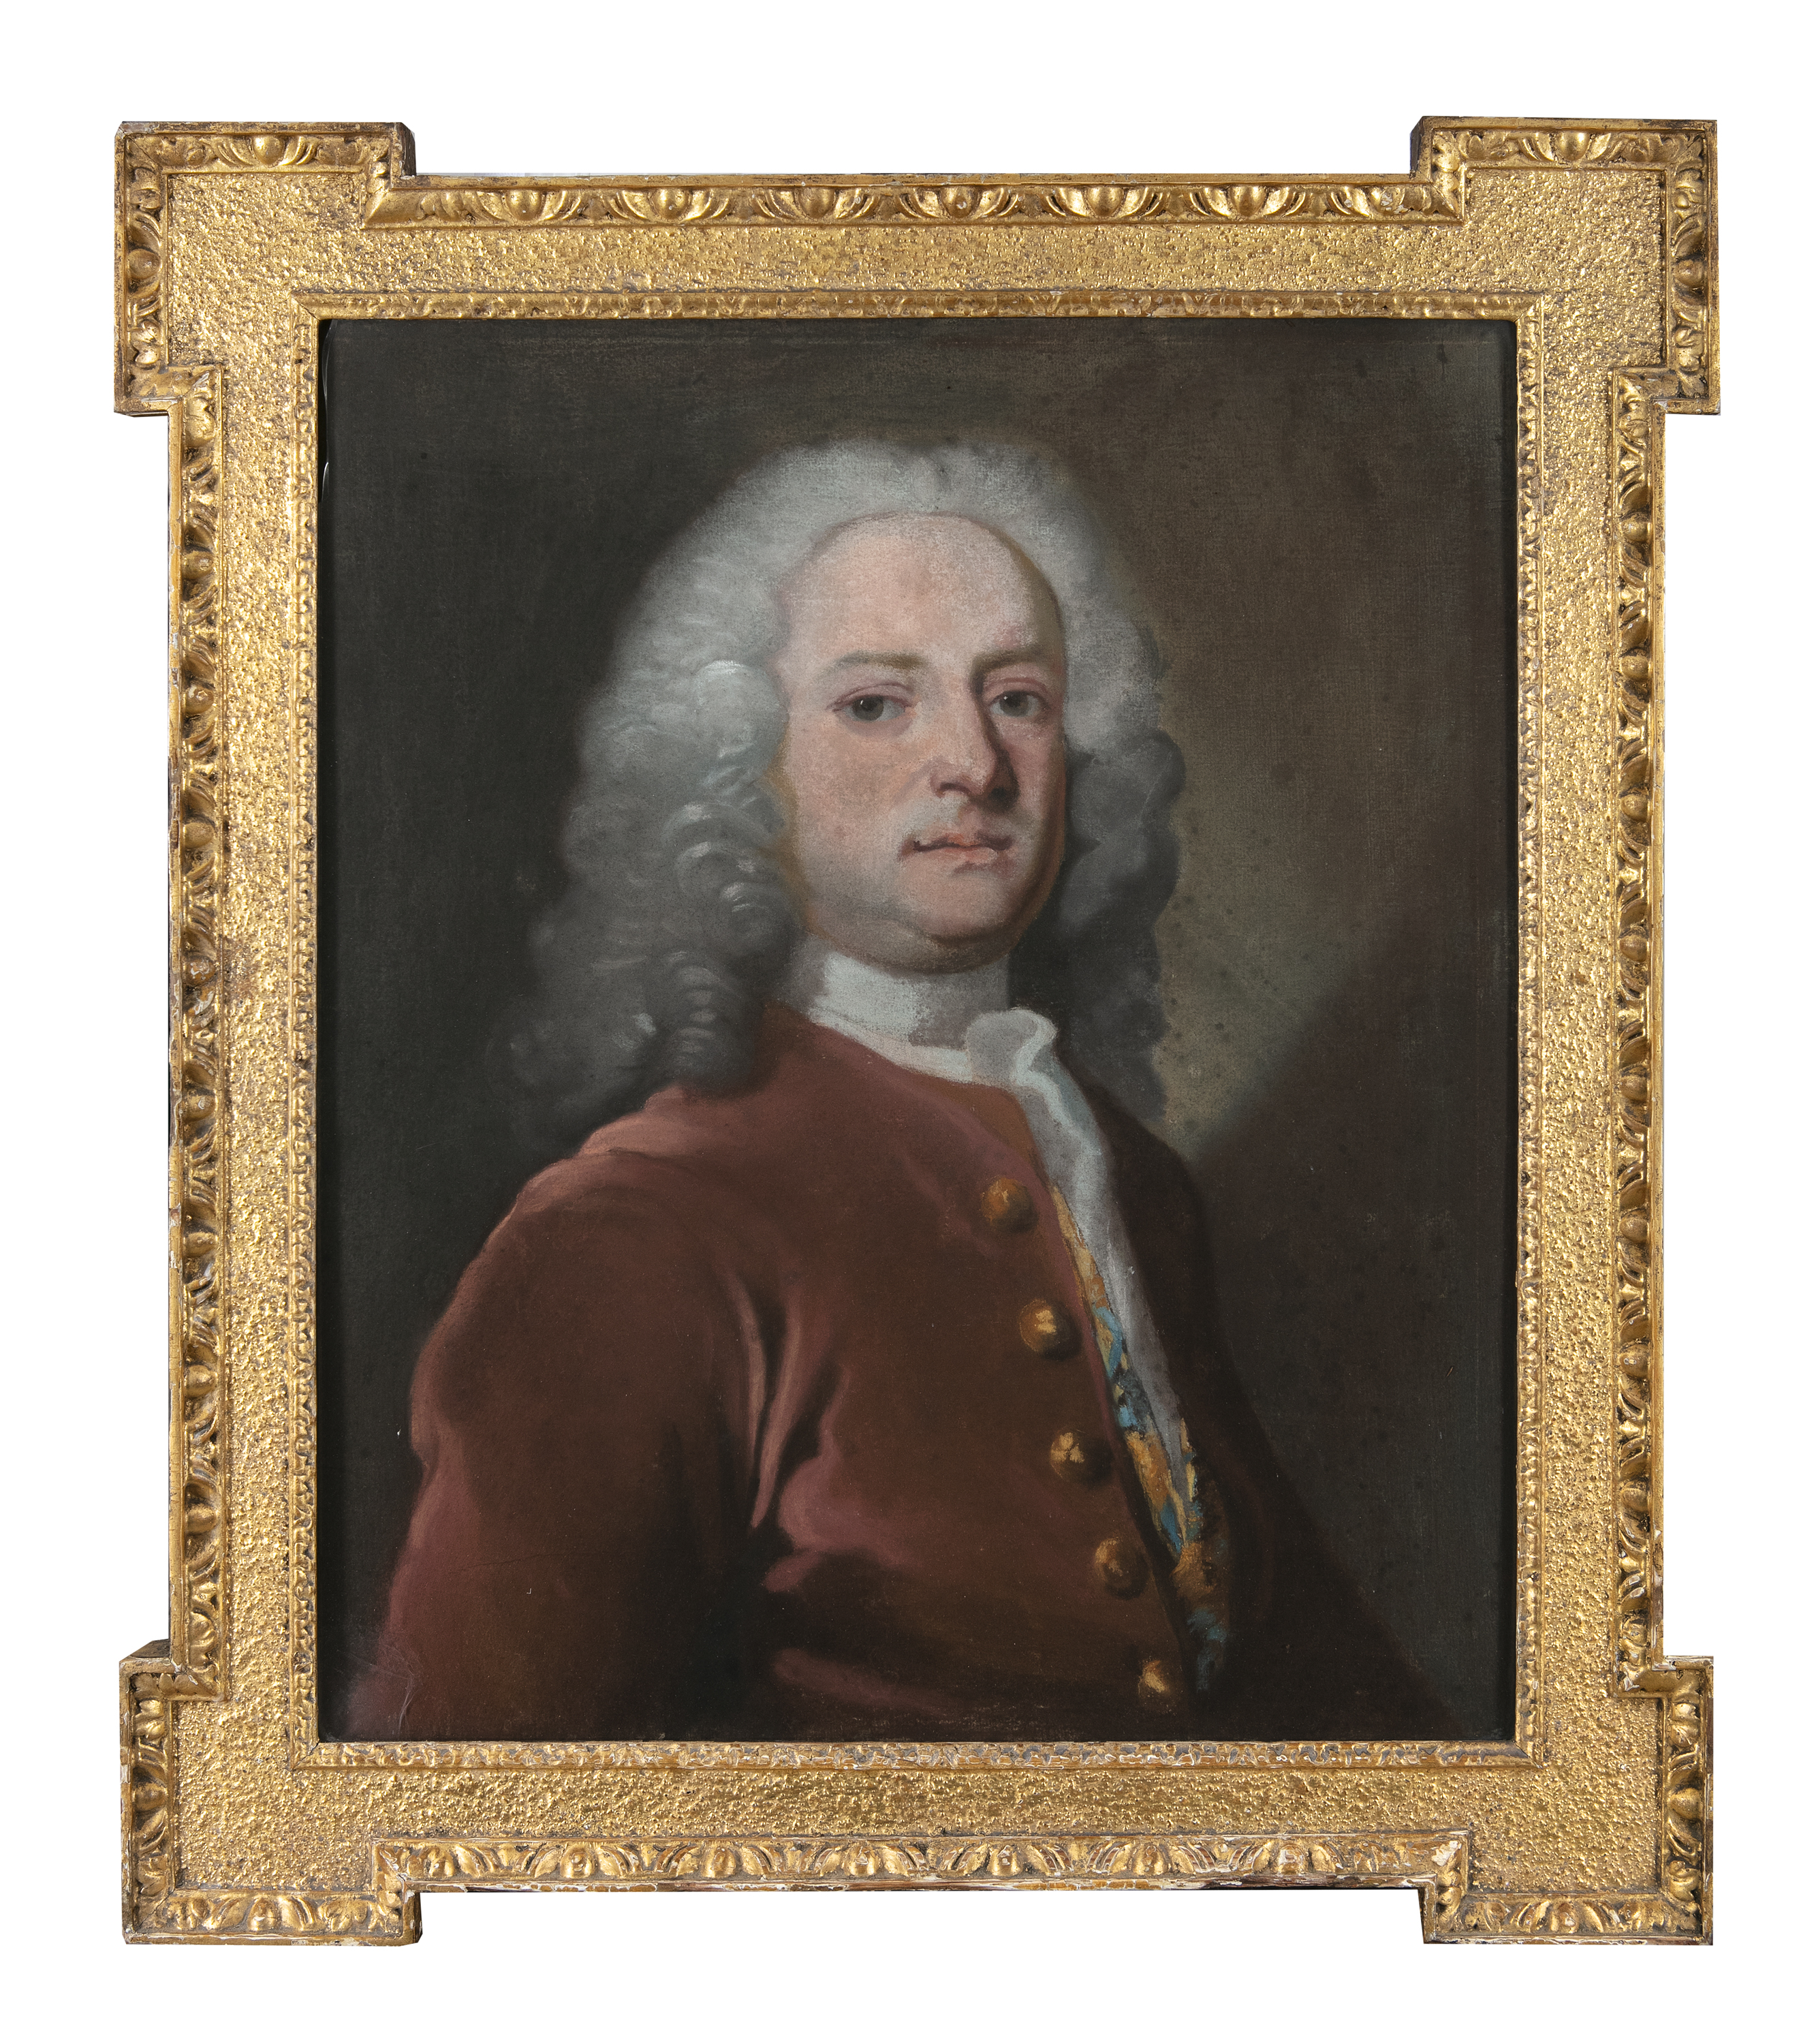 Lot 508 - FRENCH SCHOOL (18TH CENTURY) Portrait of a Gentleman, Wearing a Velvet Jacket and a Grey Wig Pastel,